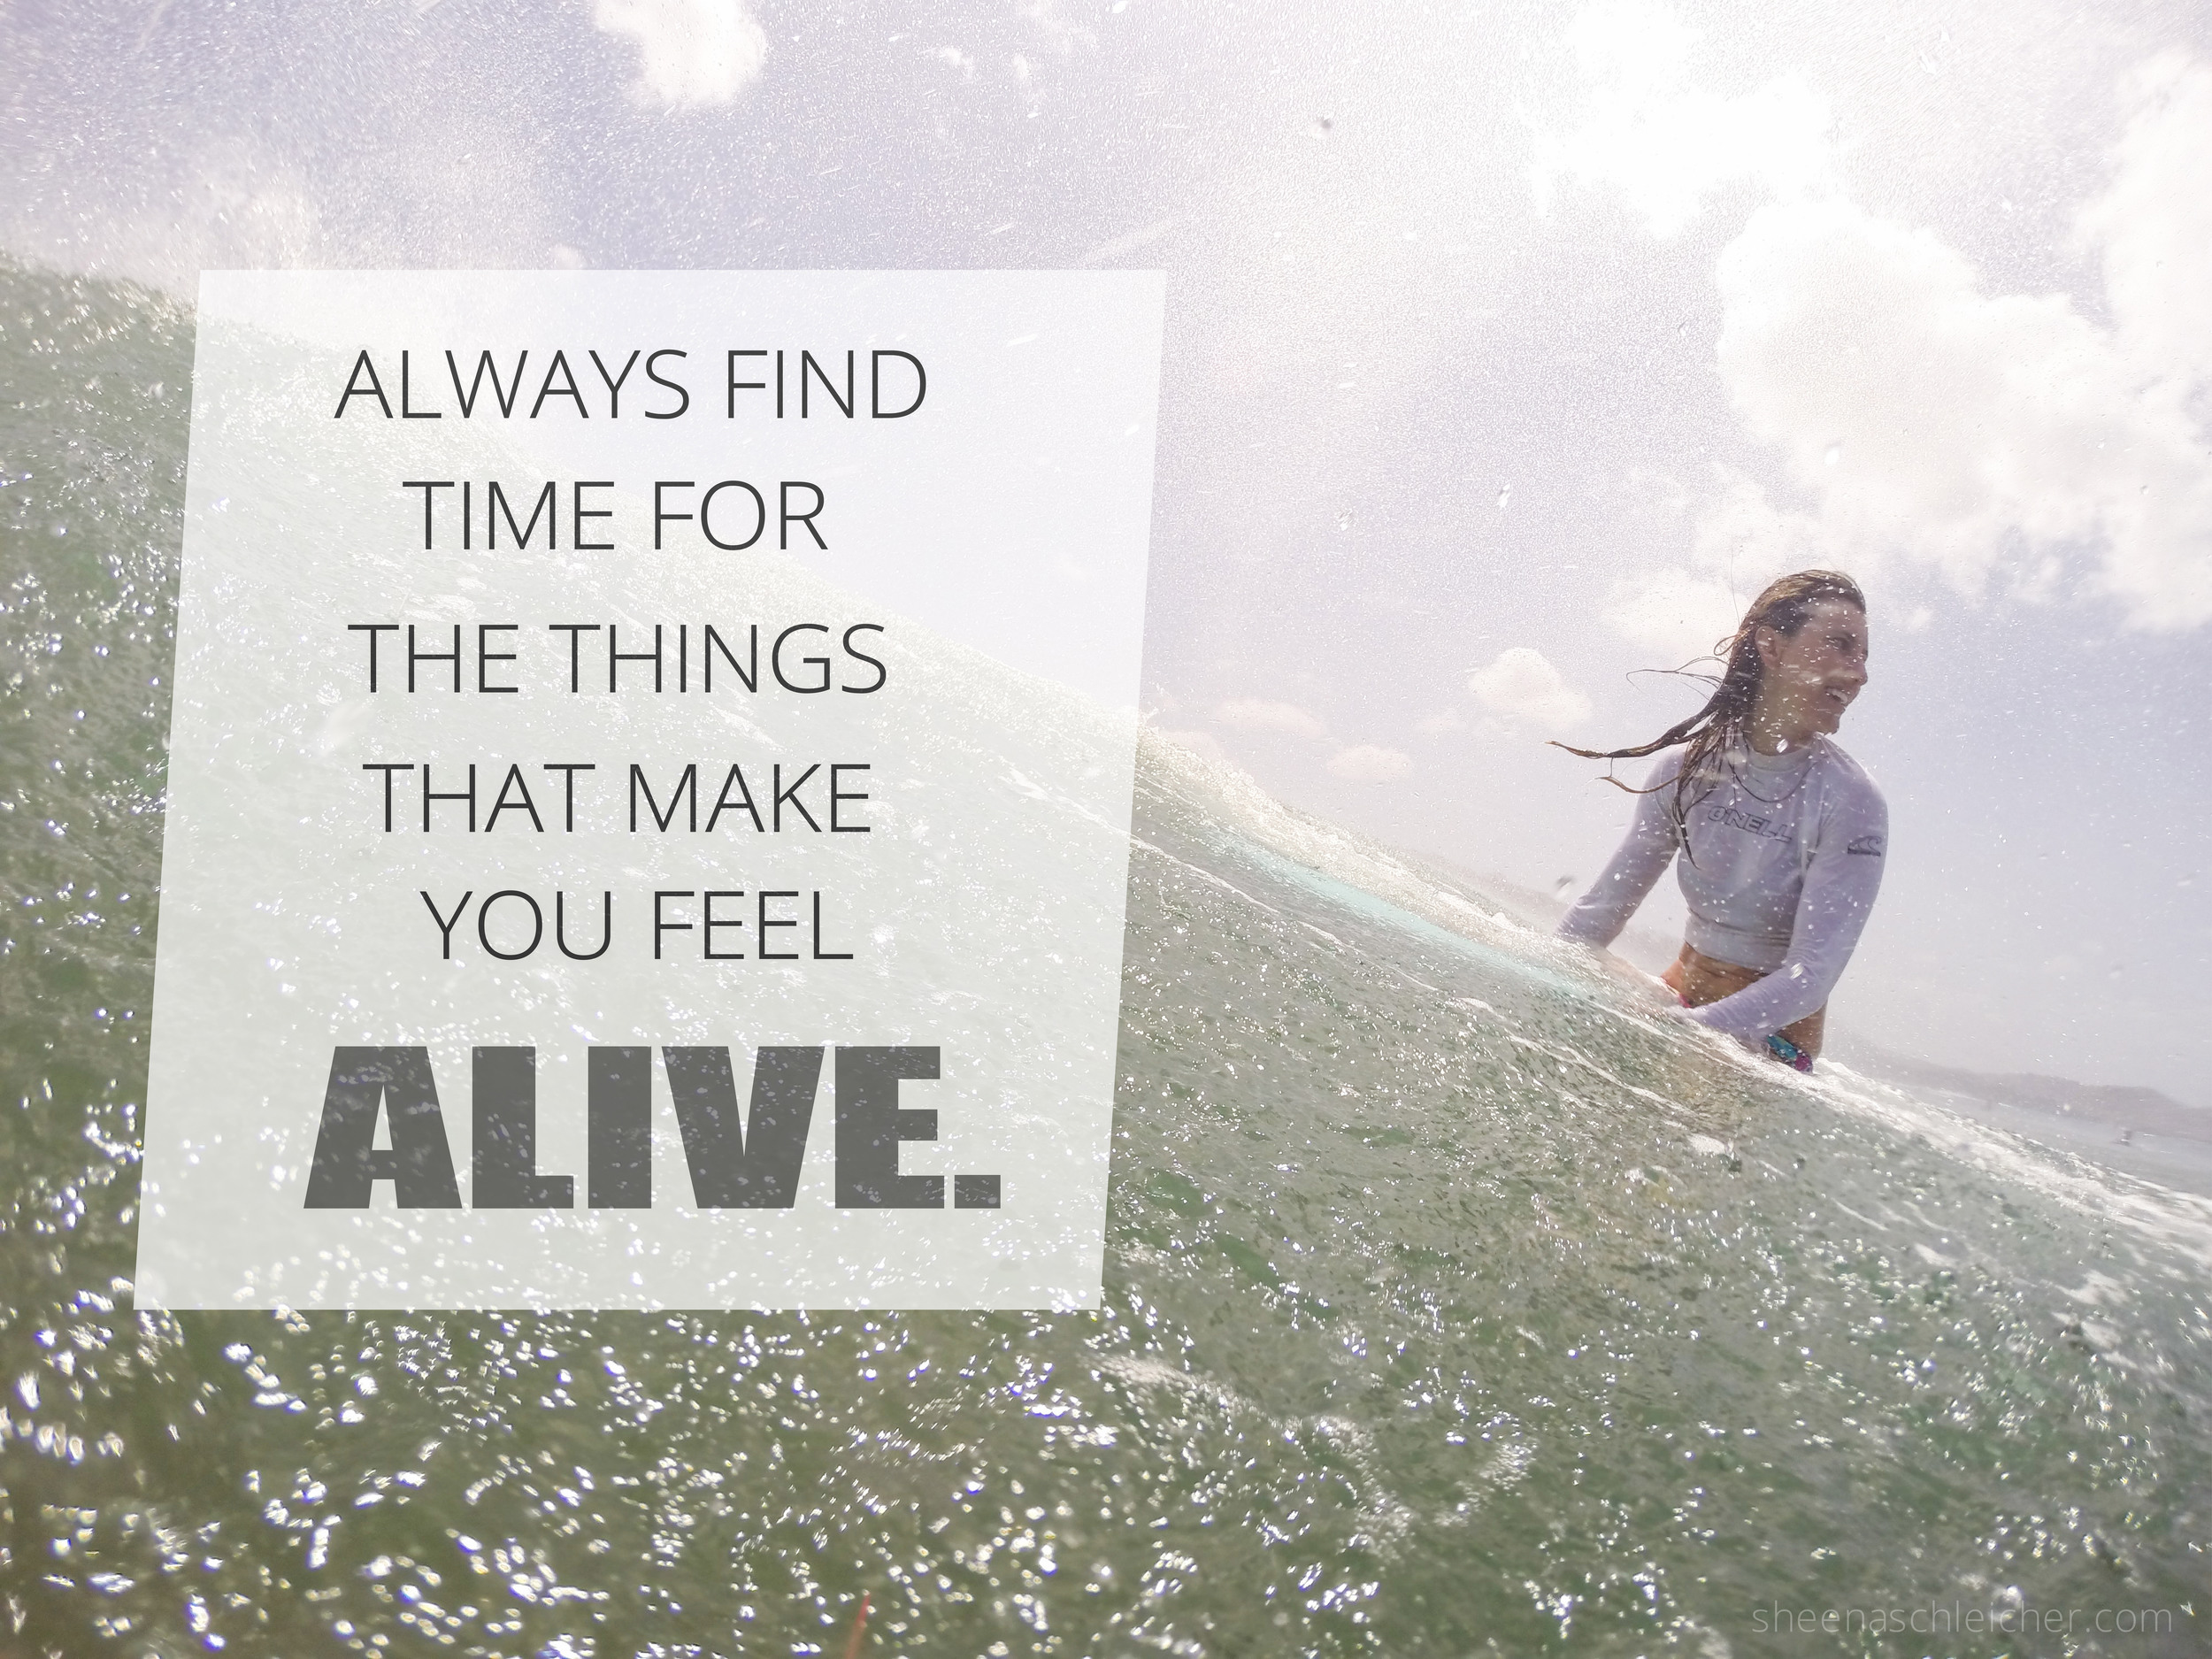 Always find time for the things that make you feel ALIVE. #inspiration #surfing #adventure #quote